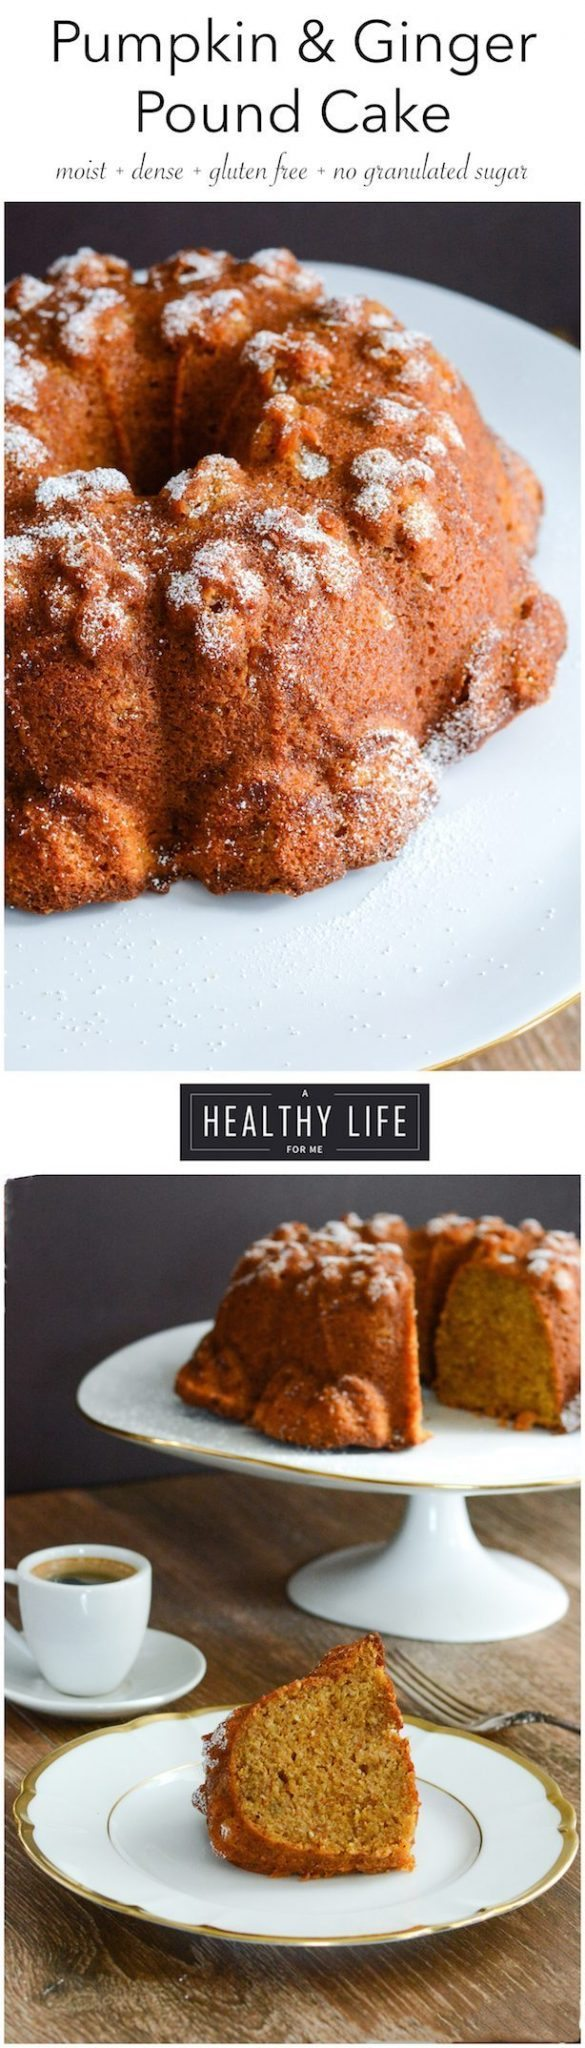 Pumpkin Ginger Pound Cake Recipe Gluten Free | ahealthylifeforme.com